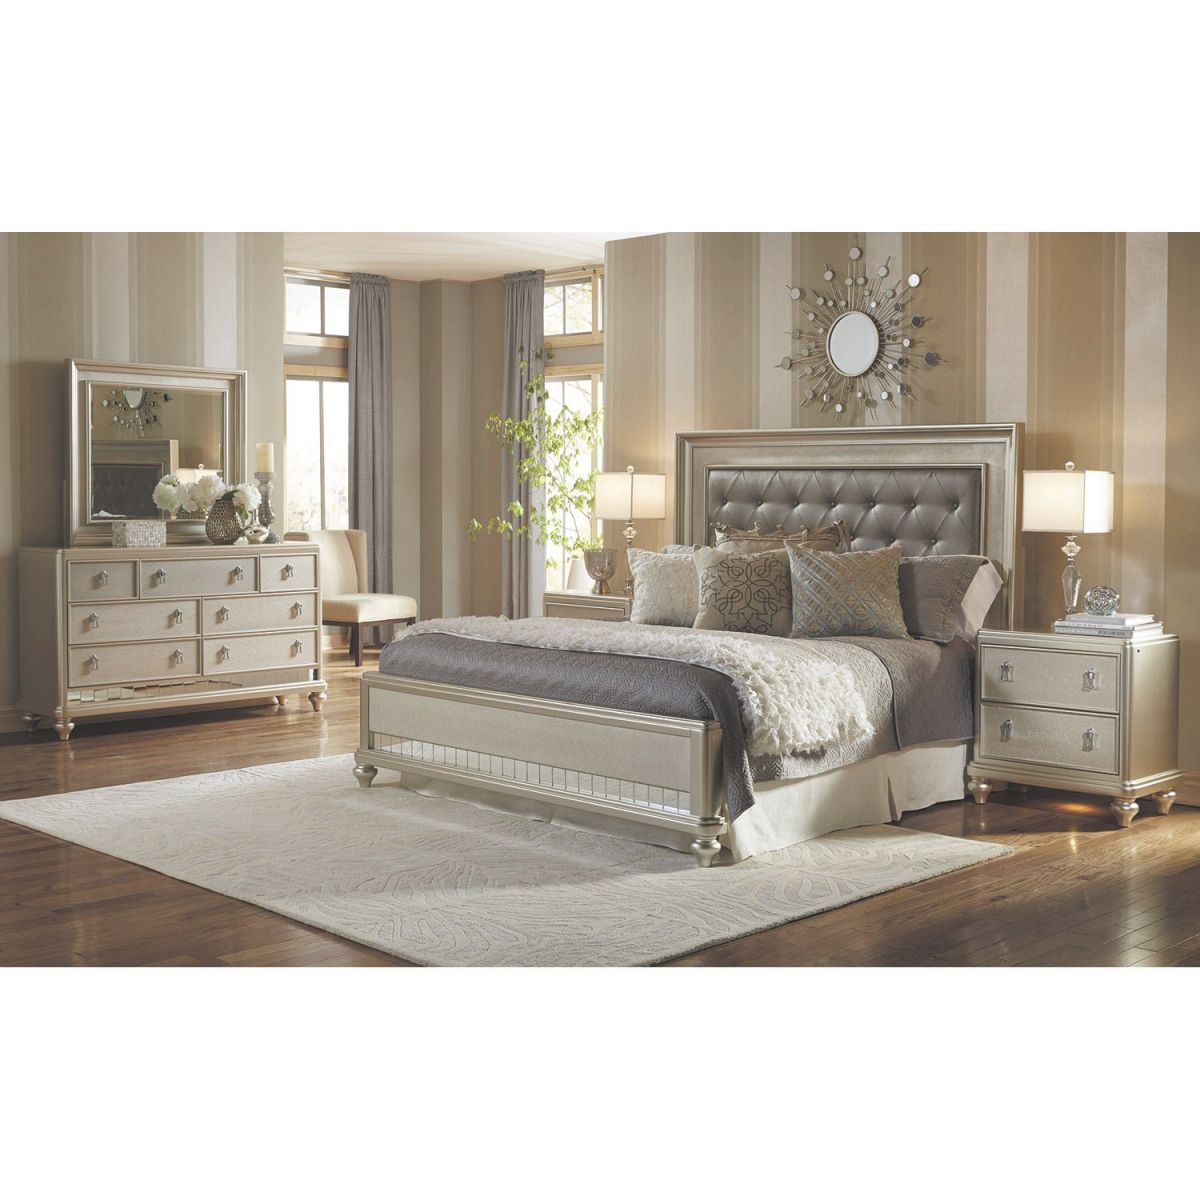 Diva 5 Piece Bedroom Set with regard to Bedroom Set Vanity